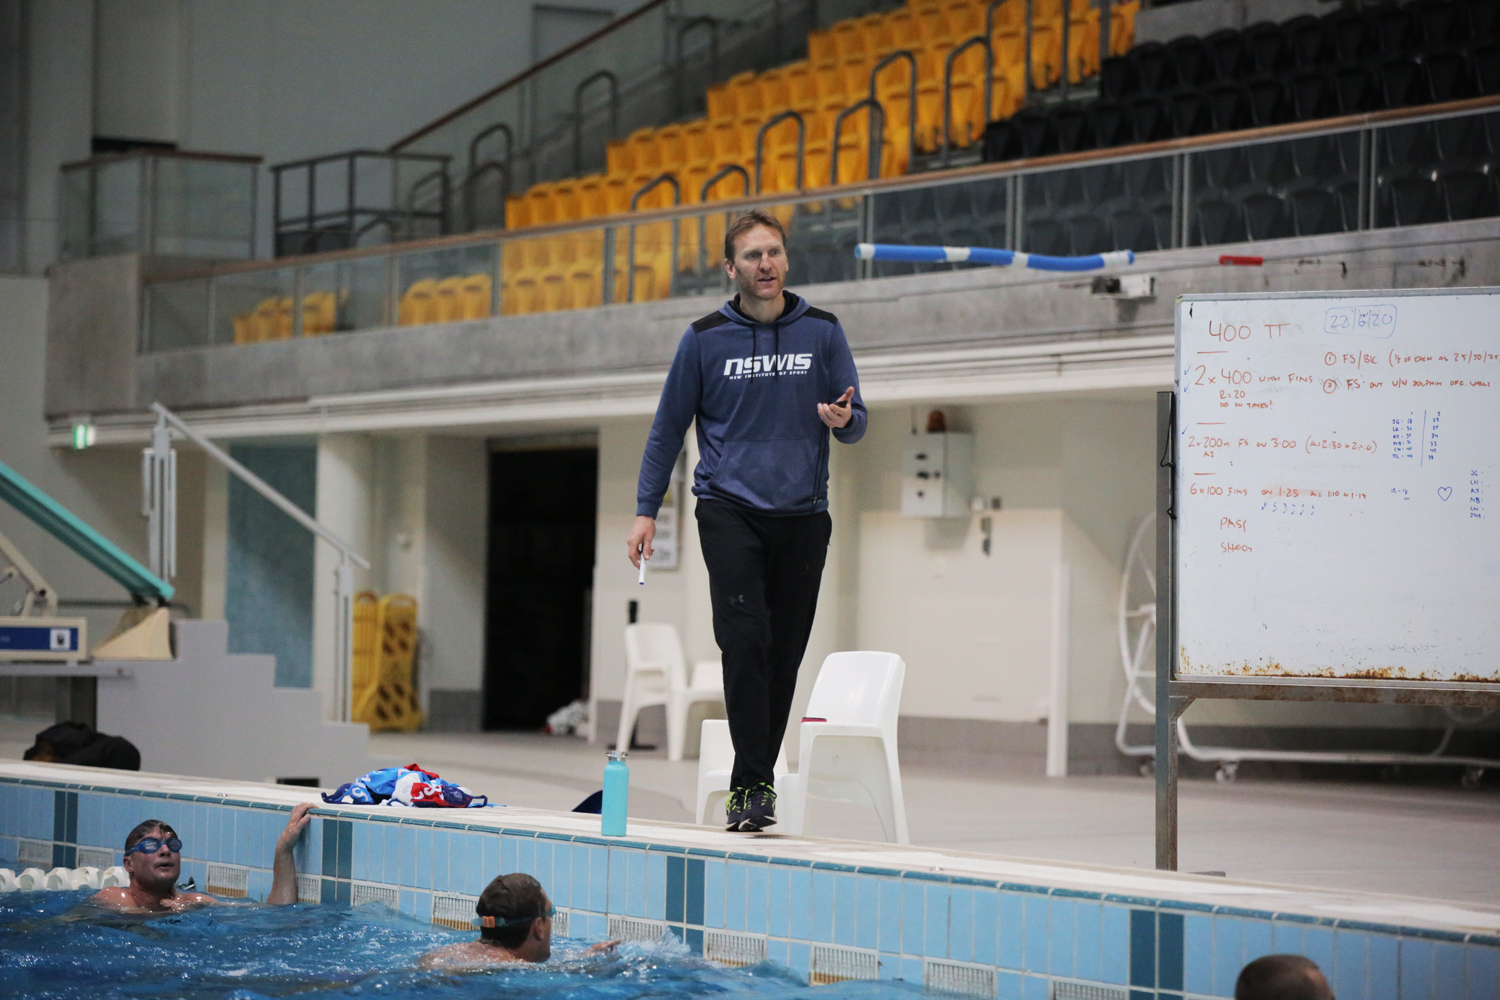 Expert advice for aspiring water polo players Image